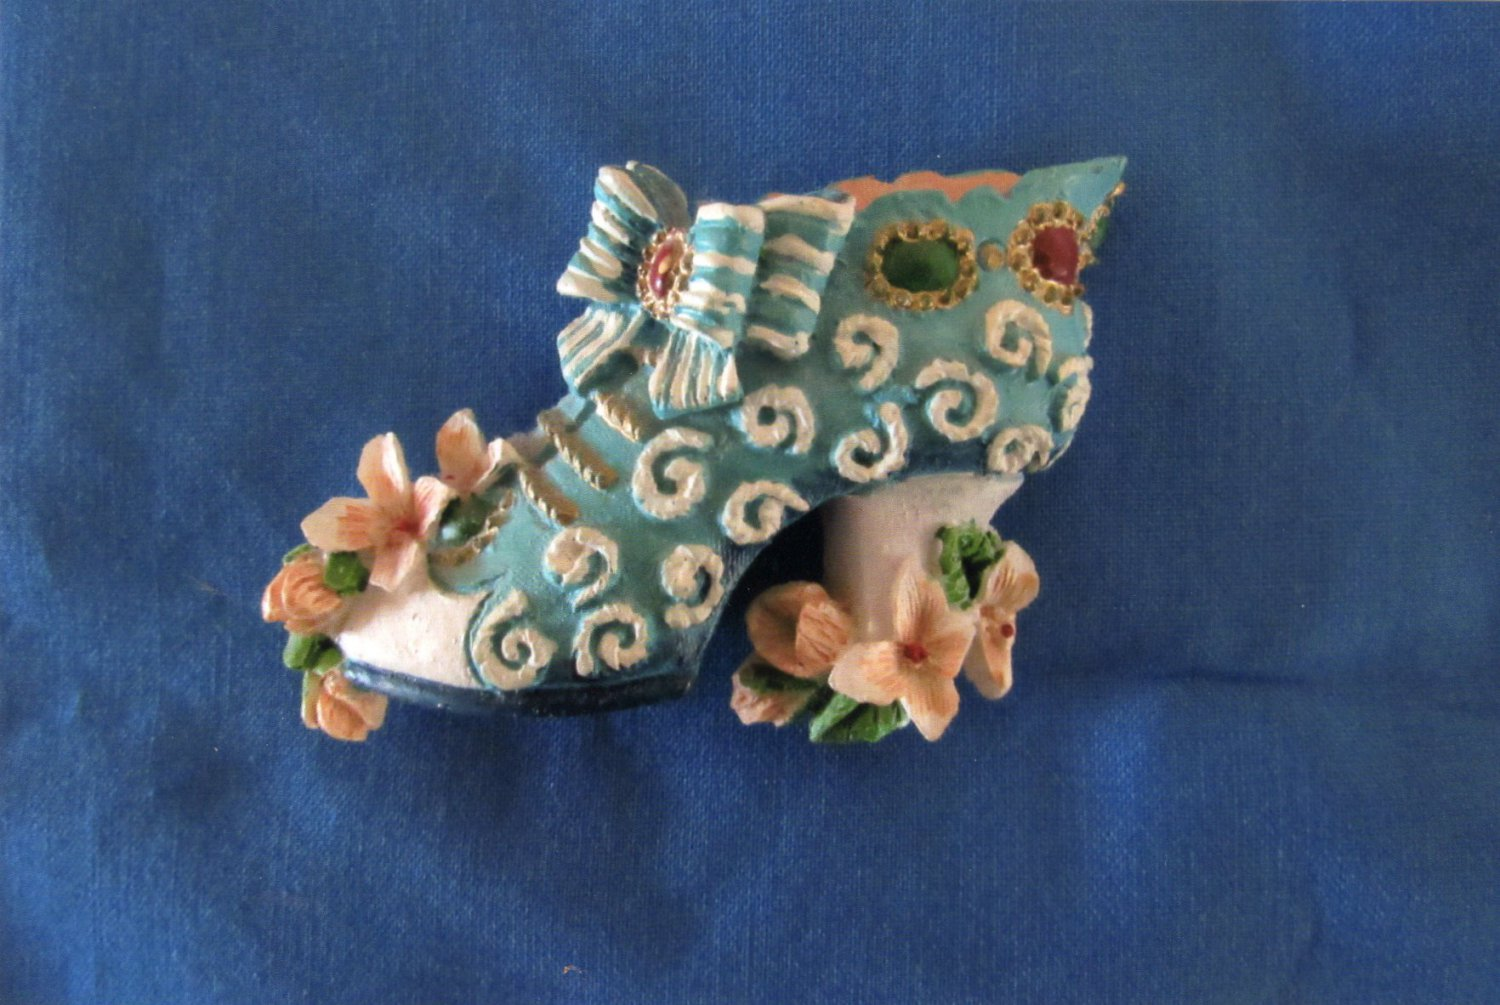 Fancy Shoe Kitchen/Refrigerator 3D Magnet With Bow & Flowers, Whimsical, Ceramic, Resin